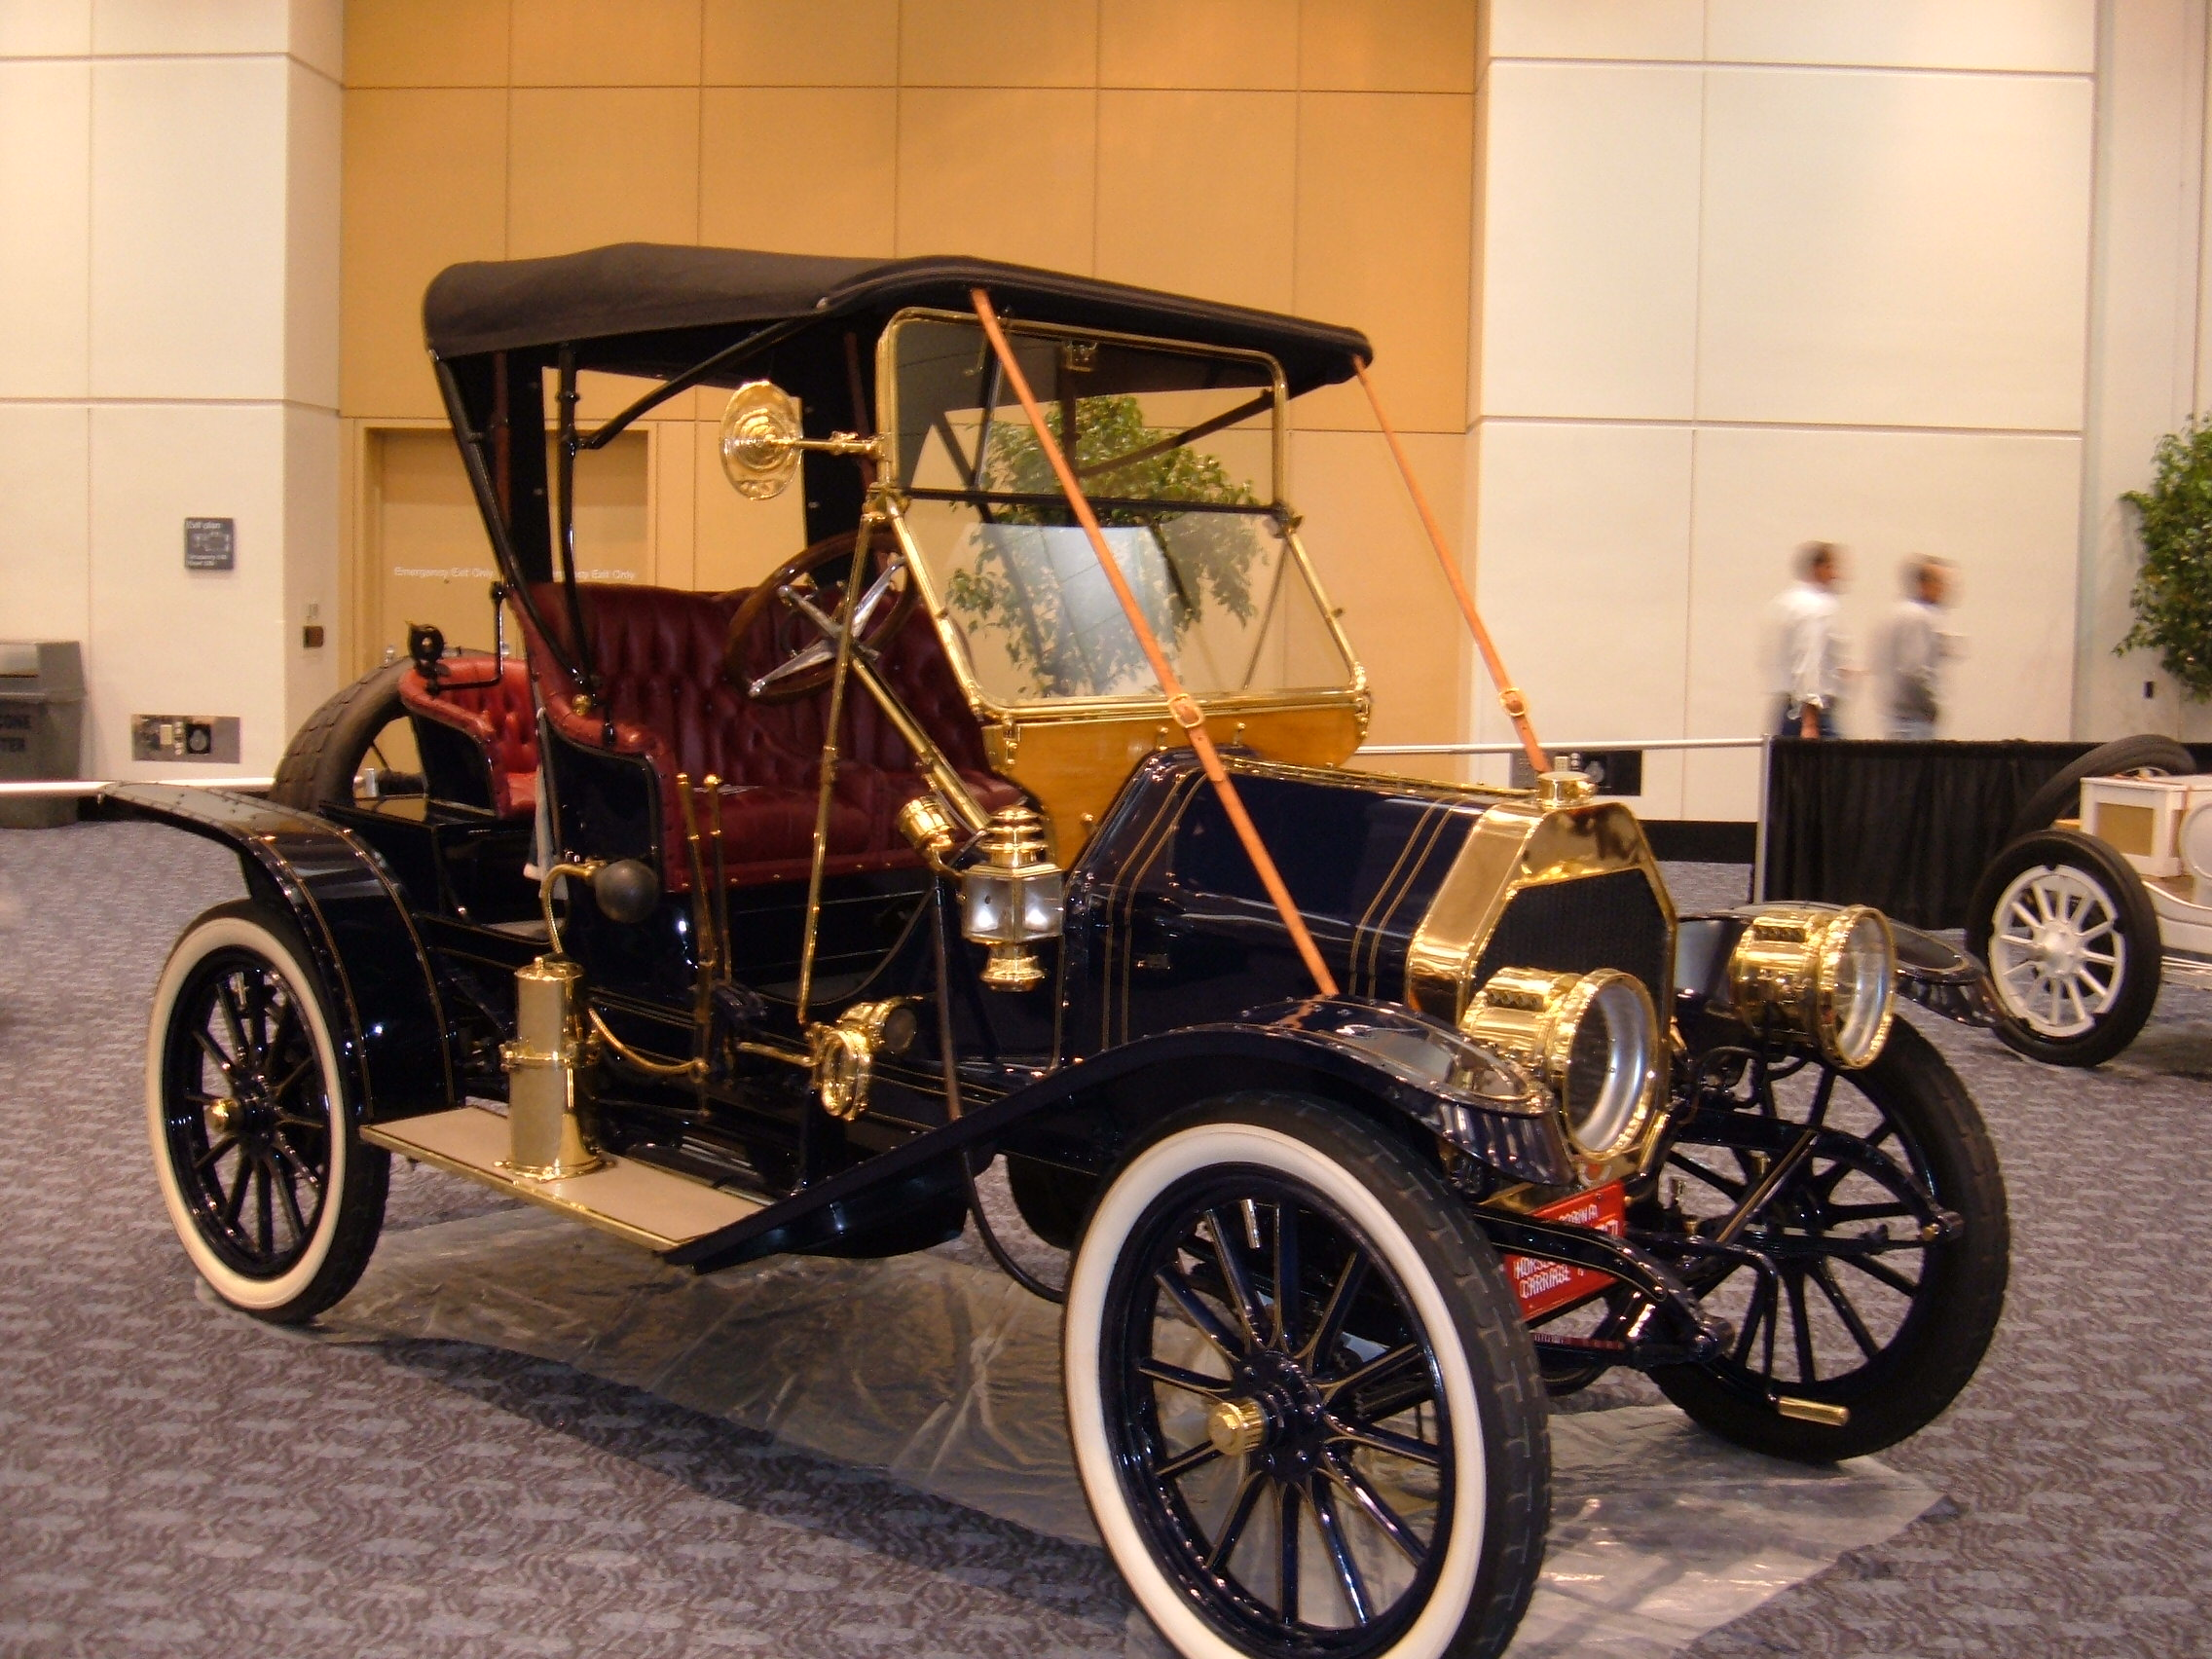 Early American Automobiles 1908-1910